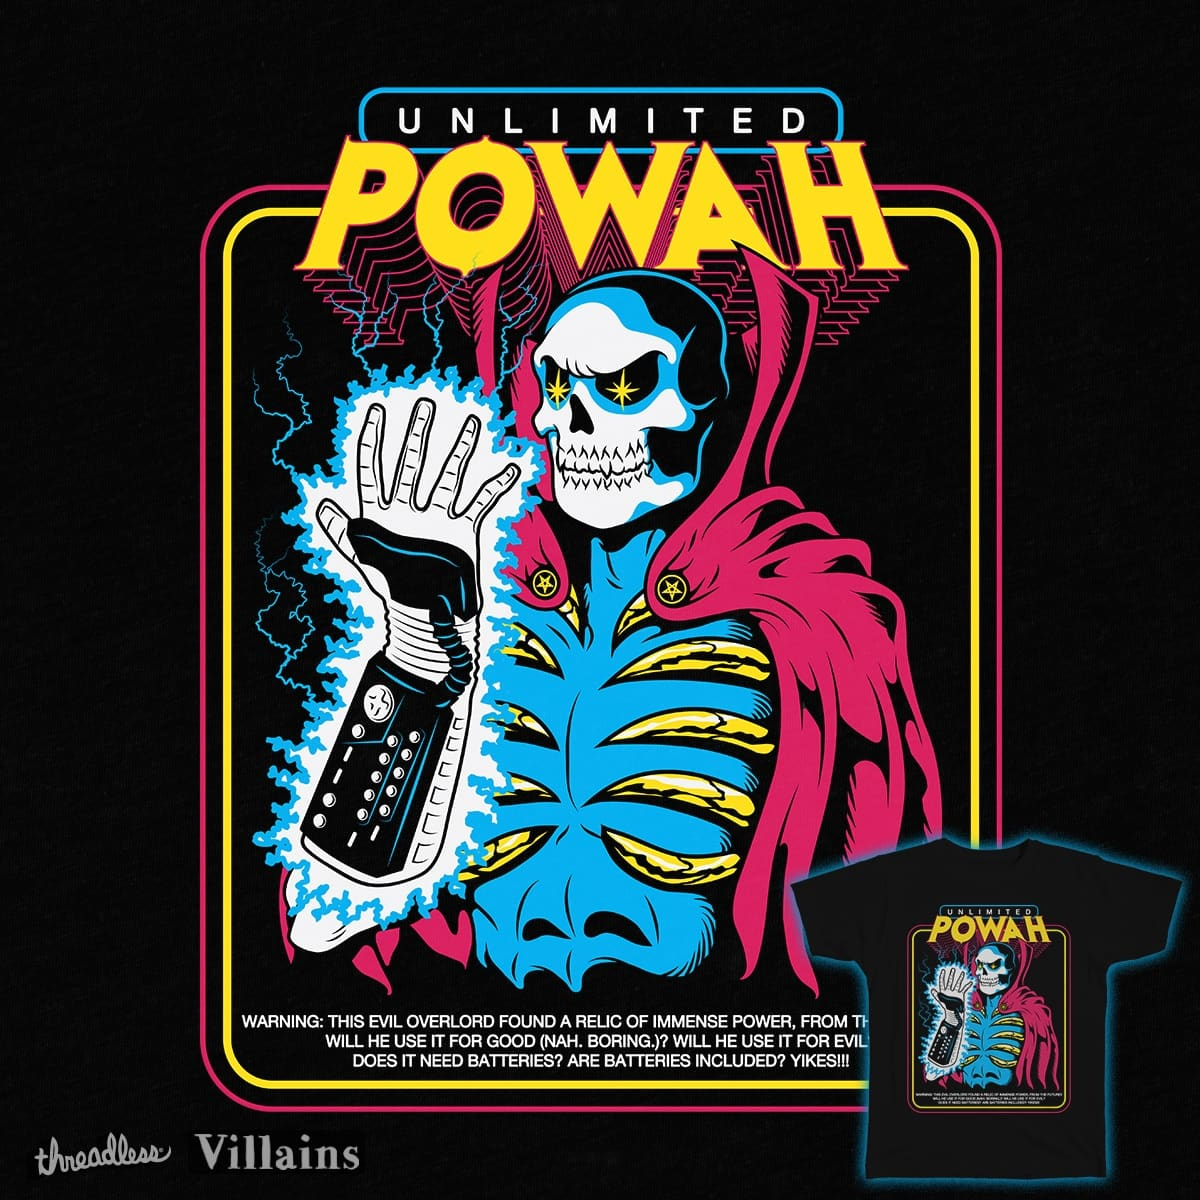 UNLIMITED POWAH by renvillainzilla on Threadless